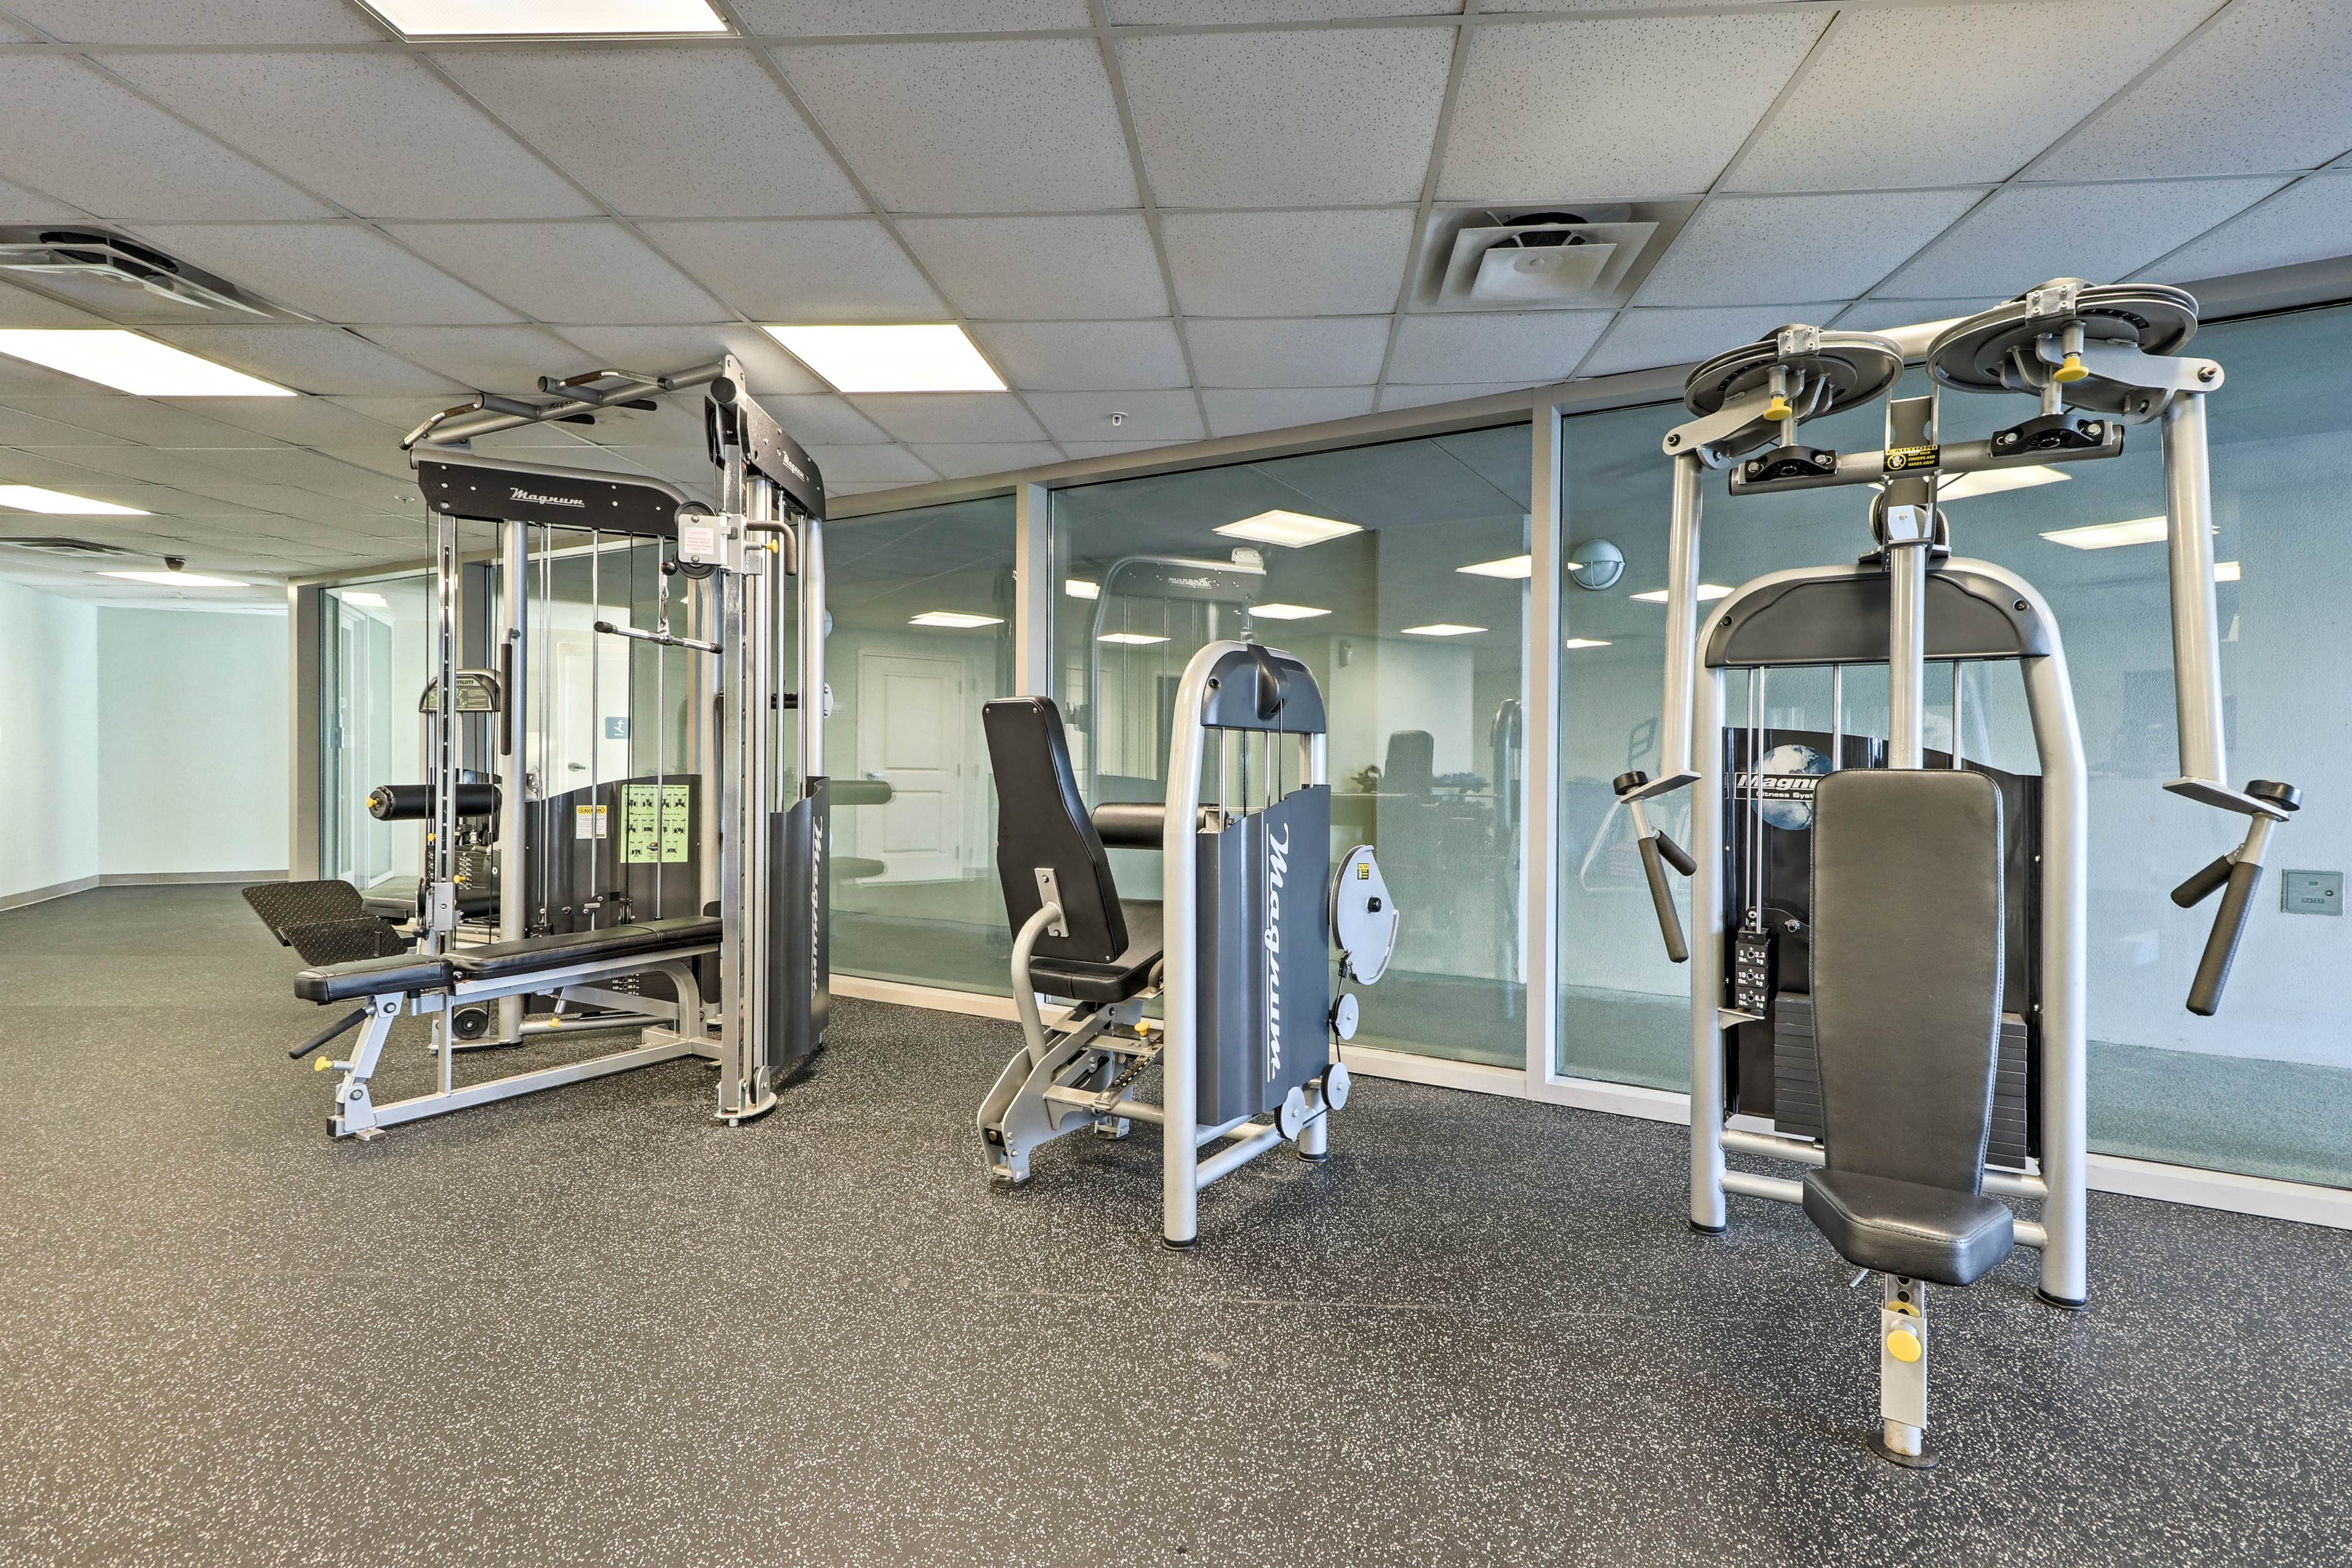 The Seabreeze Condominiums feature a fitness room and sauna.